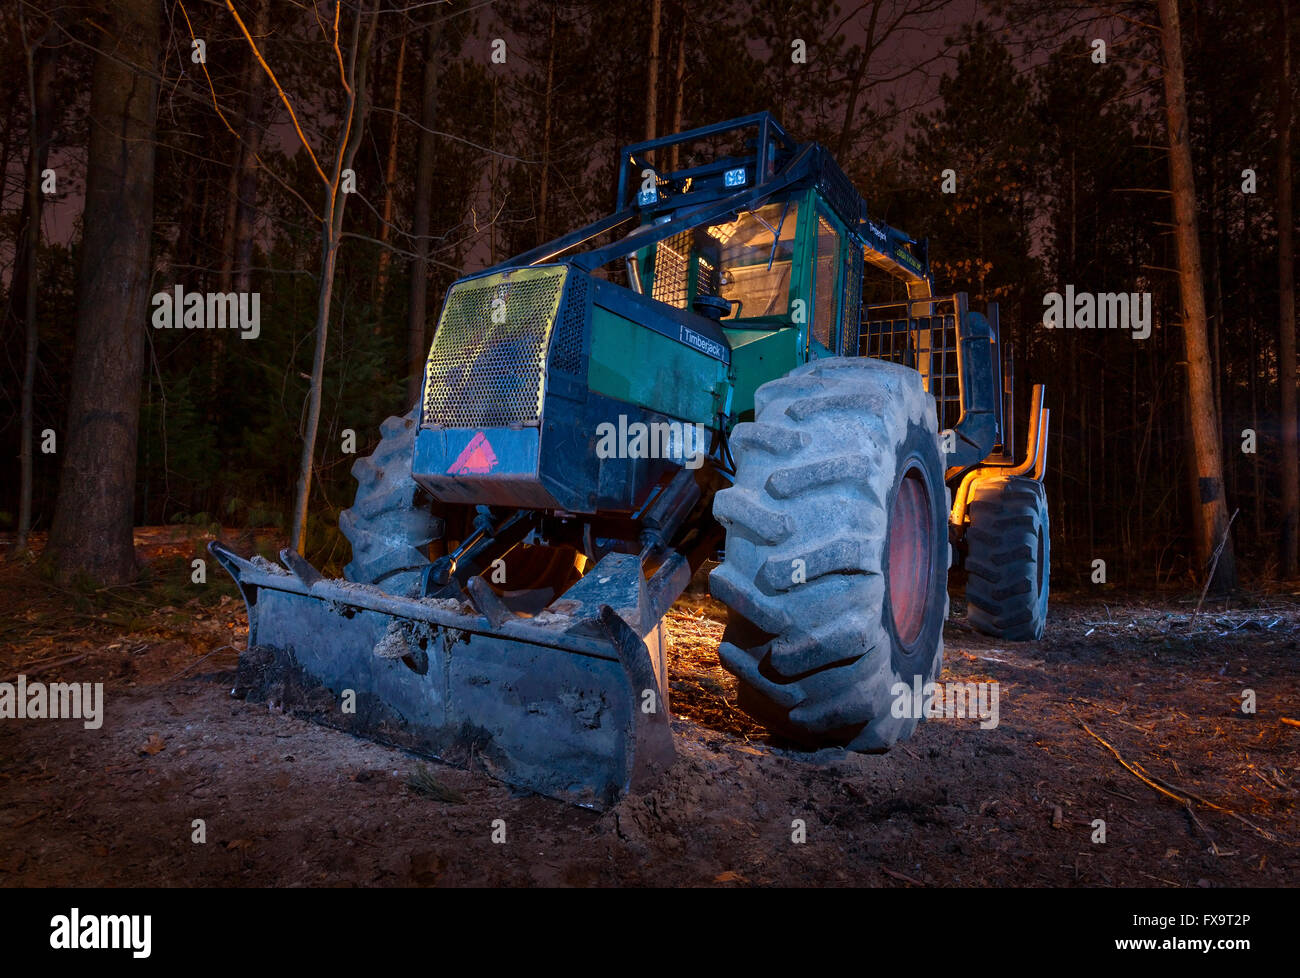 A forestry forwarder truck light painted during a long exposure at night. East Gwillimbury, Ontario, Canada. Stock Photo